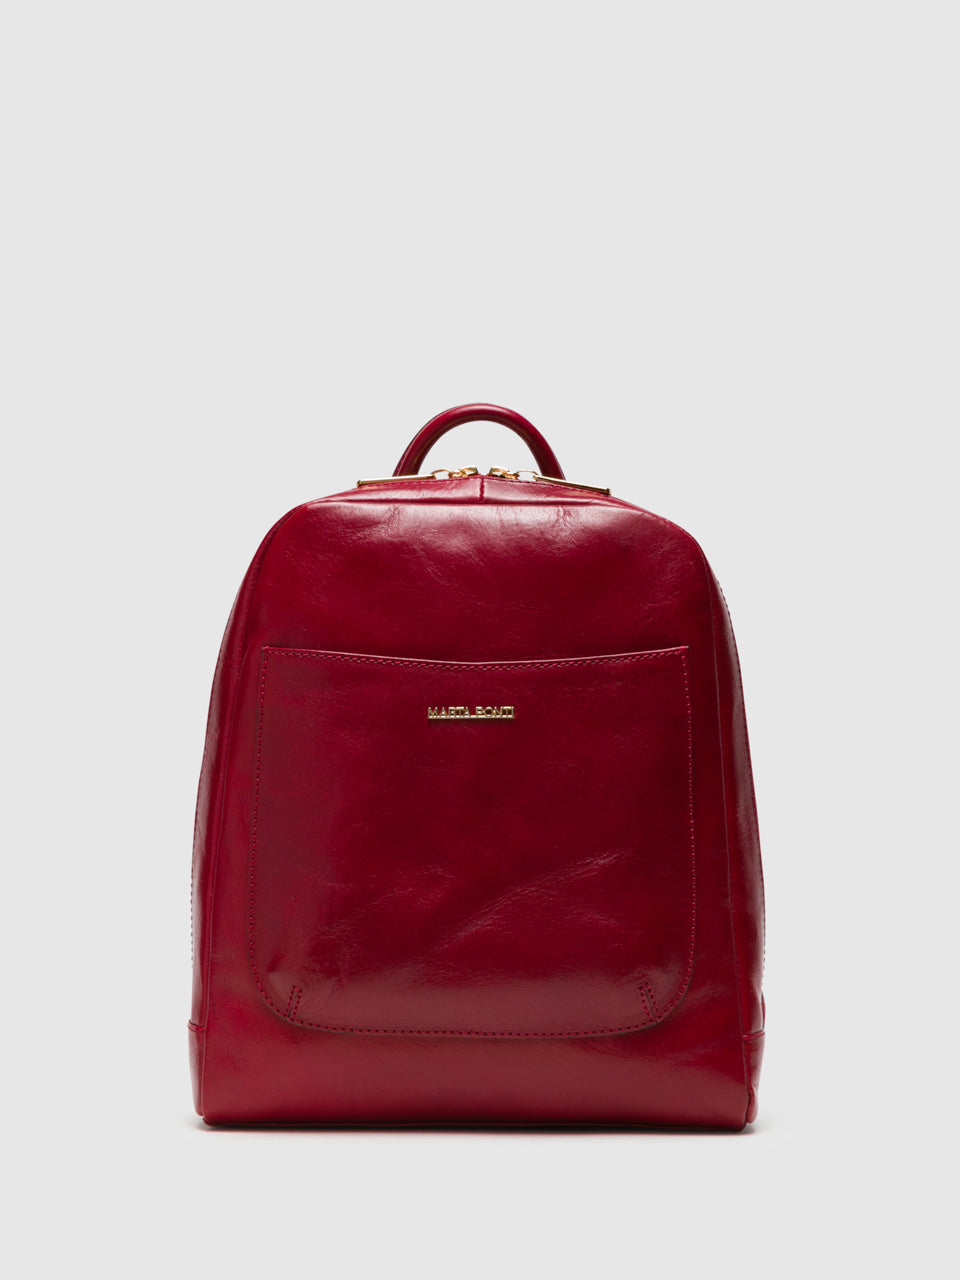 MARTA PONTI Red Backpack